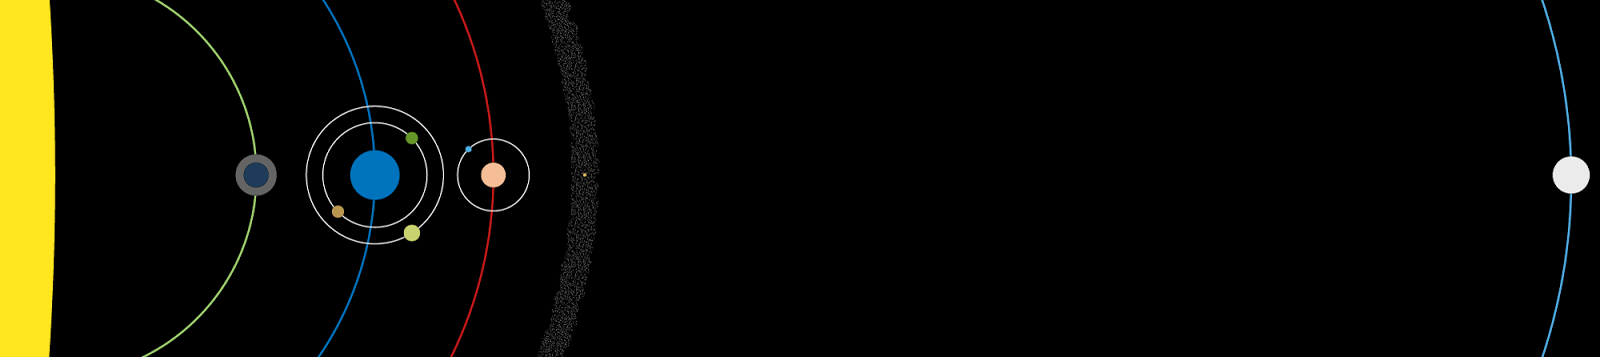 Soltan Ephemeris triple-scaled diagram, showing orbital distances, relative planet sizes, and moon orbits of Calidar and its neighbours.  Ghüle is in its proper position.